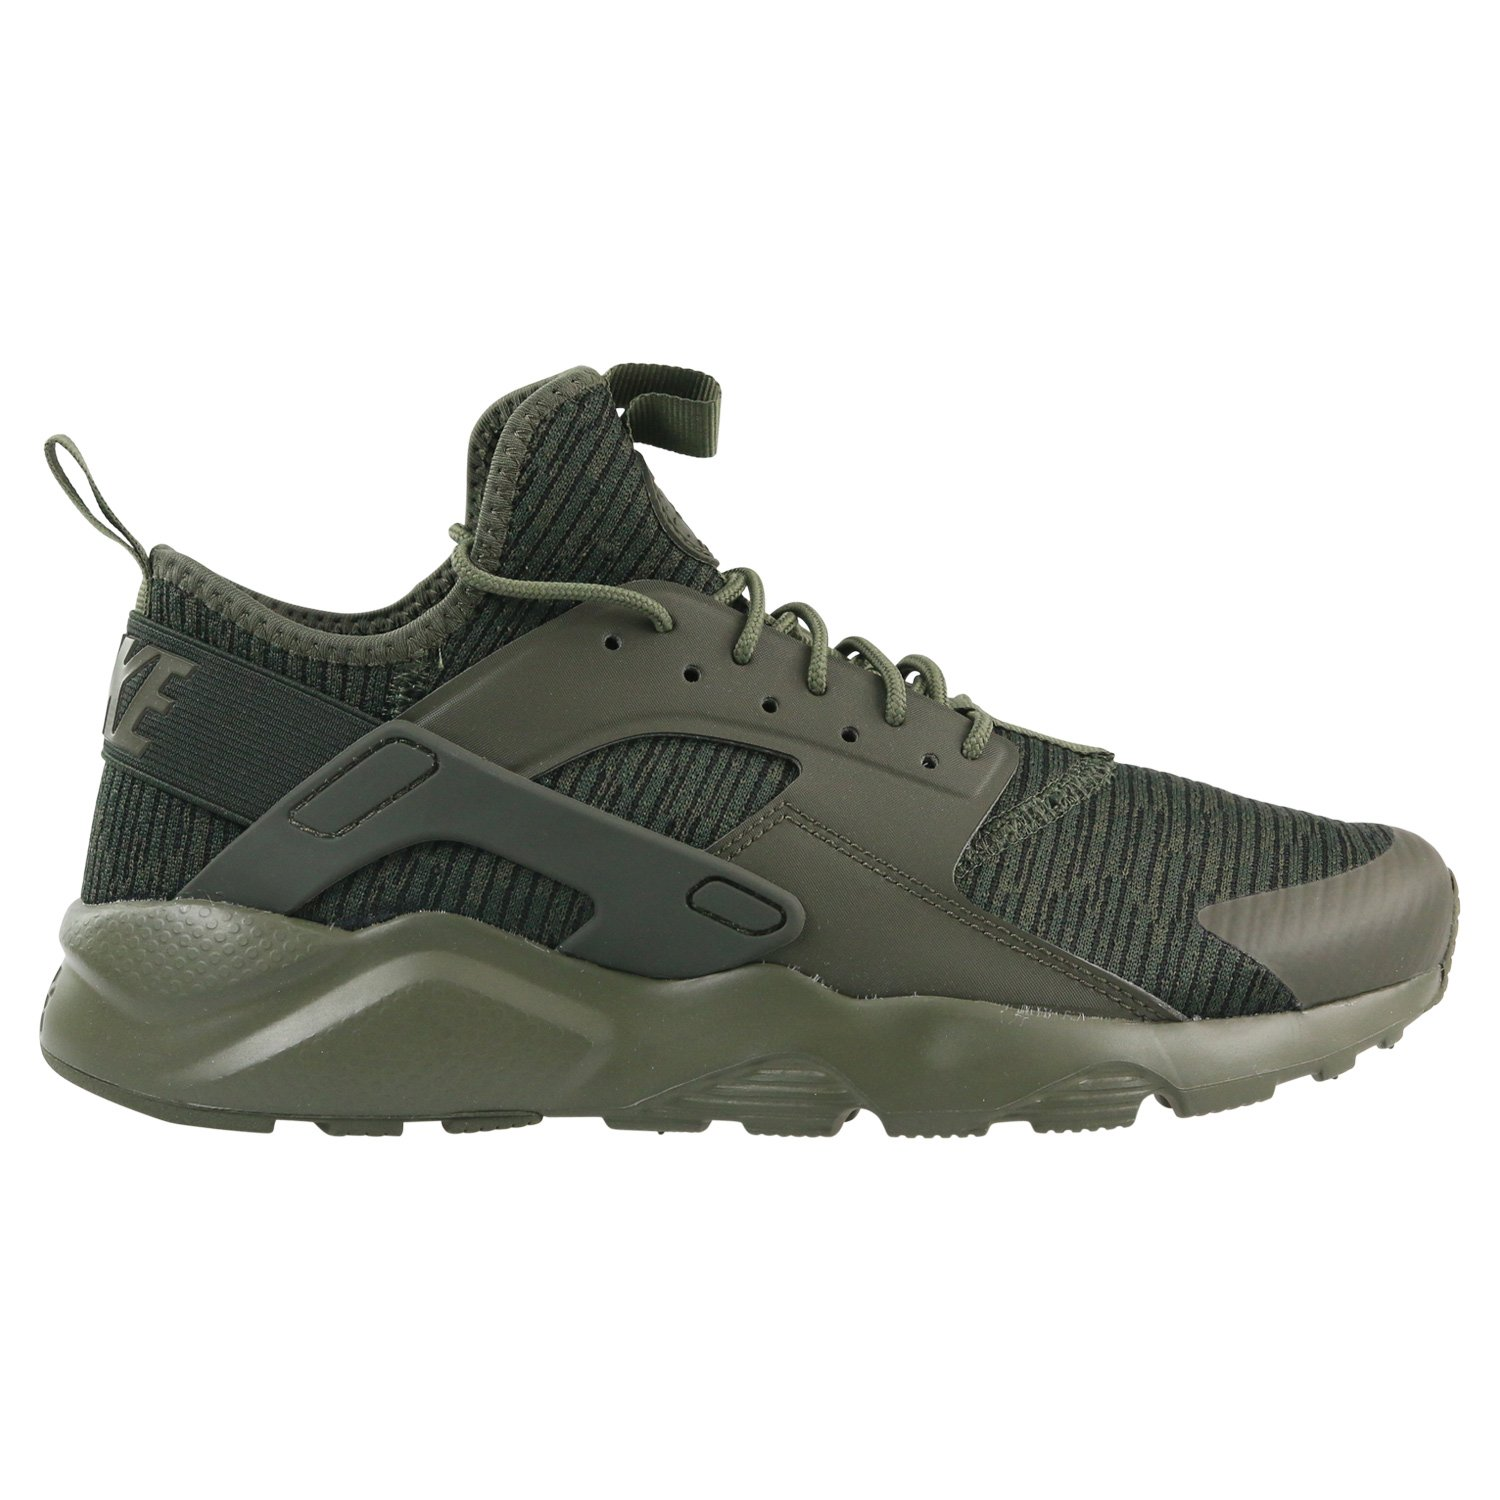 1c80e3c1bd832 Galleon - NIKE Air Huarache Run Ultra Se Mens Style  875841-303 Size  9.5